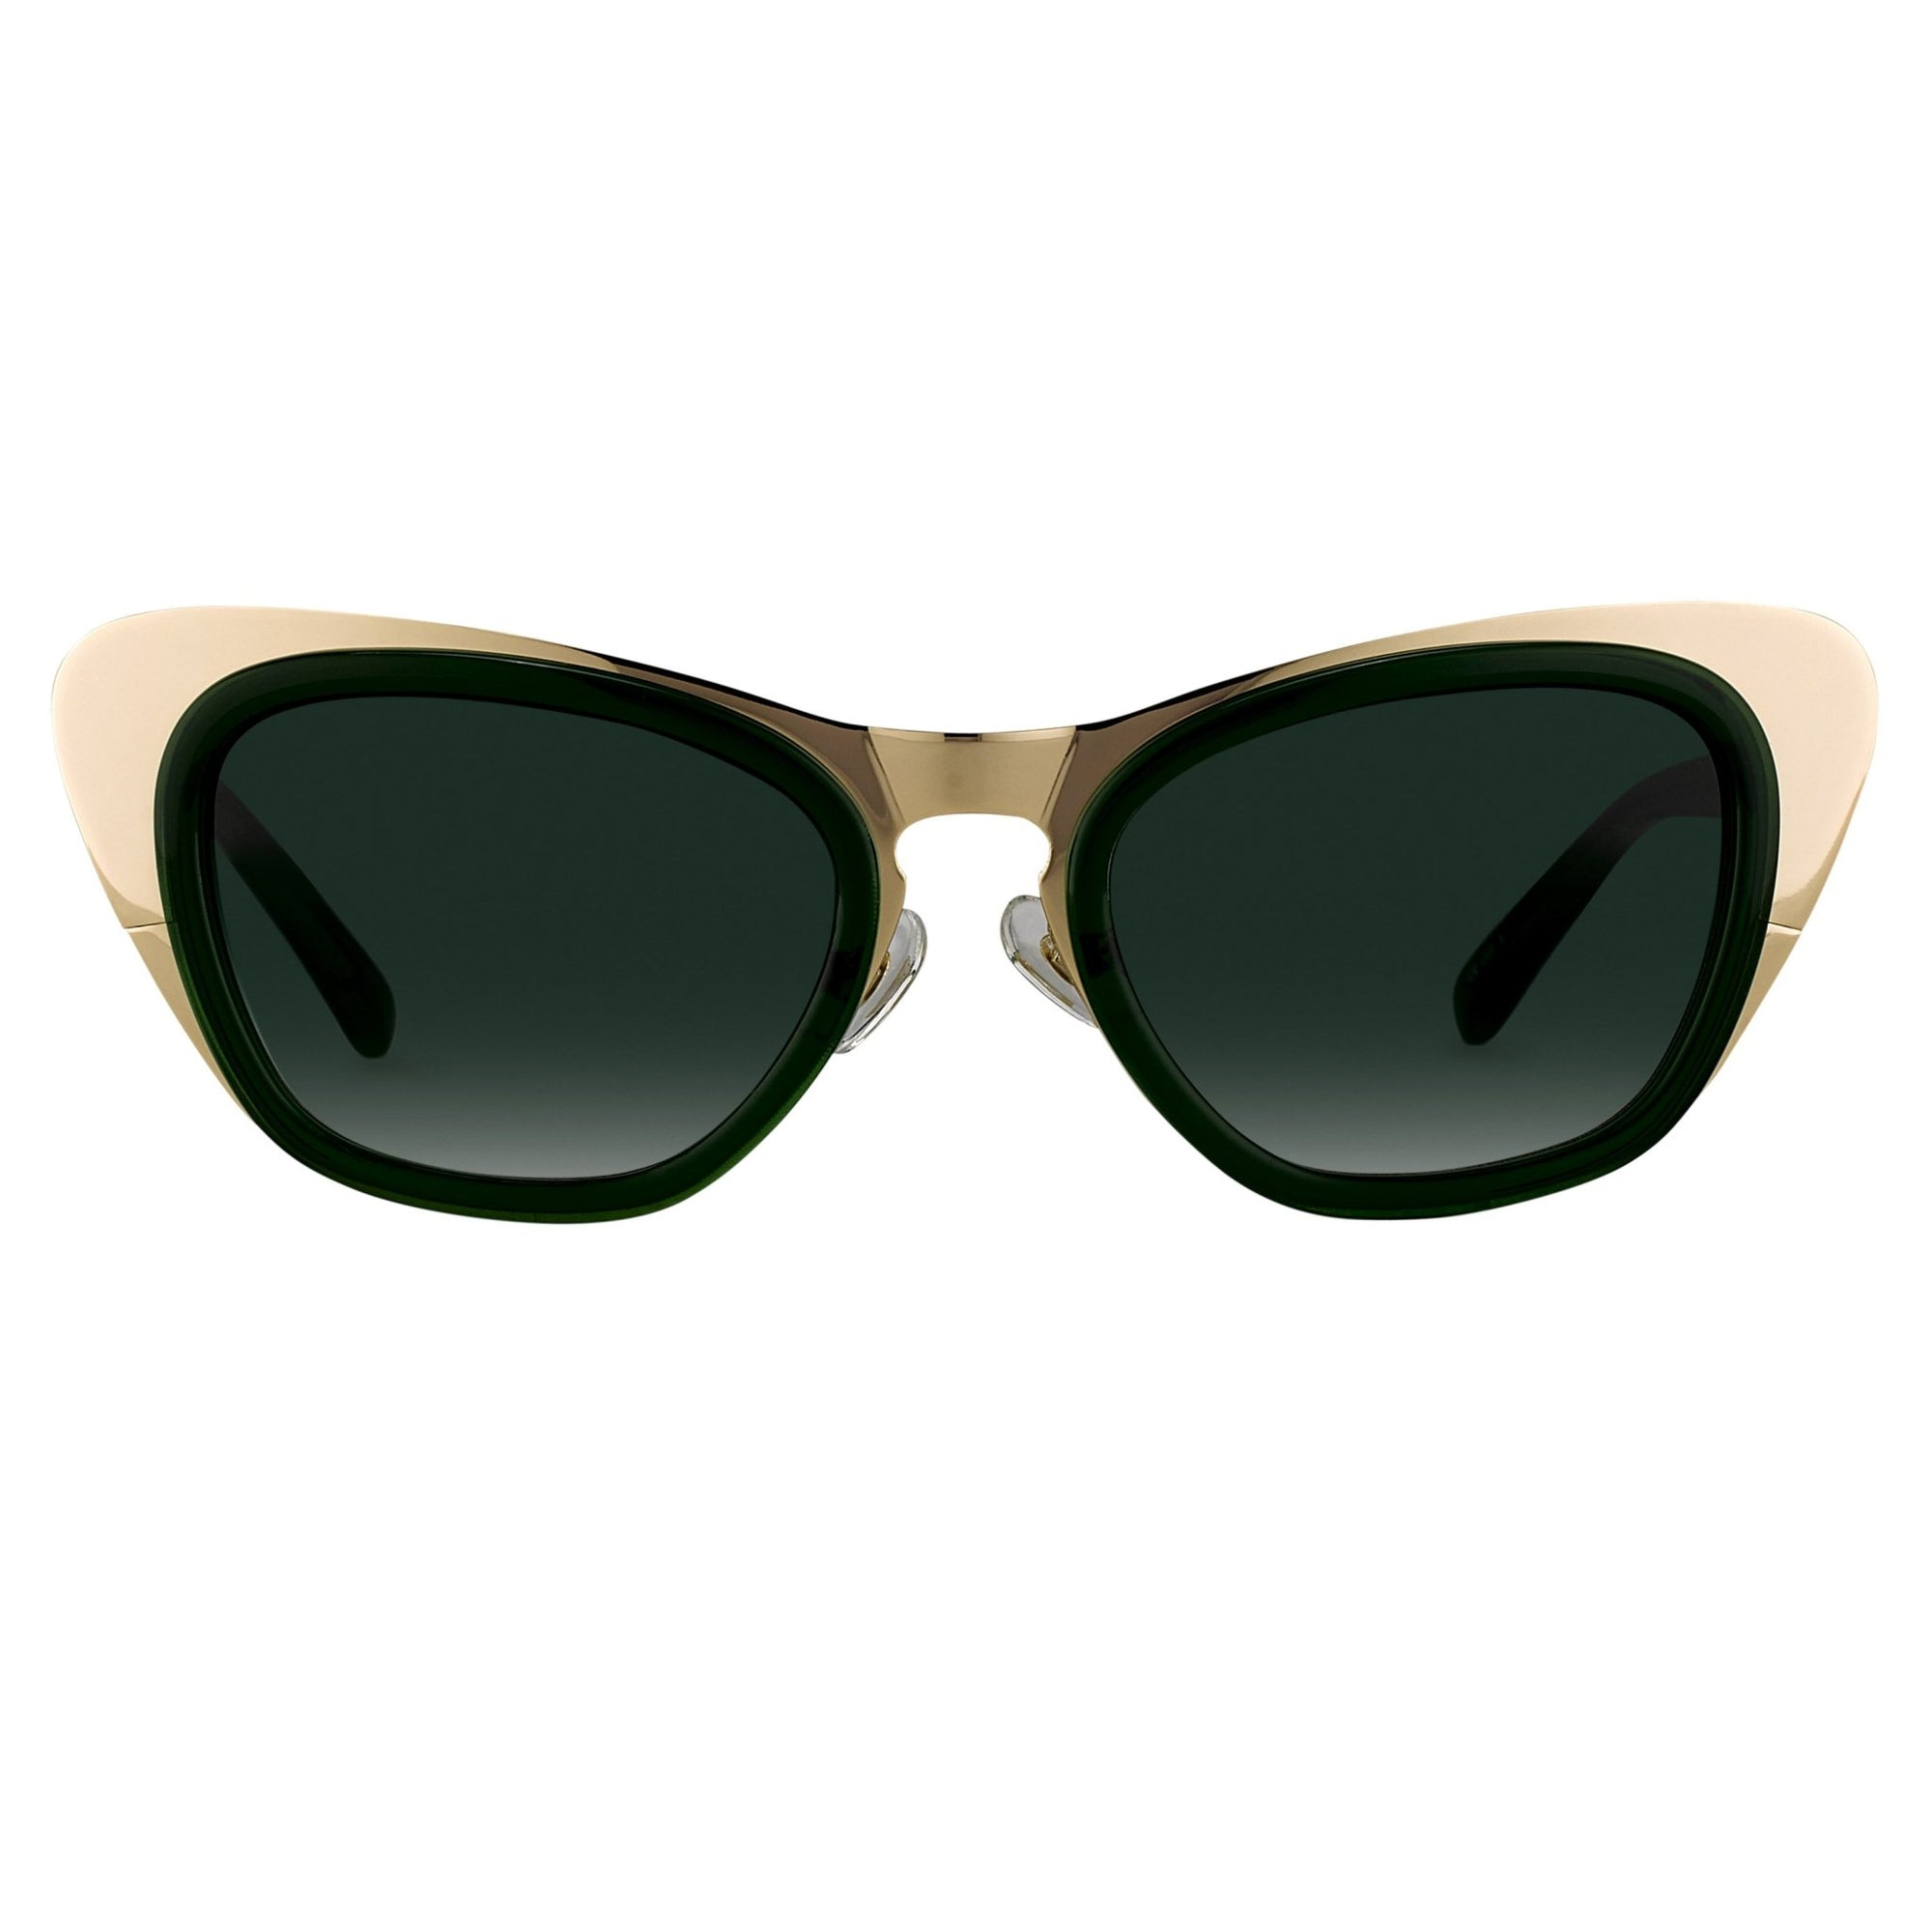 Erdem Women Sunglasses Cat Eye Dark Green Gold with Green Graduated Lenses Category 3 EDM17C3SUN - Watches & Crystals